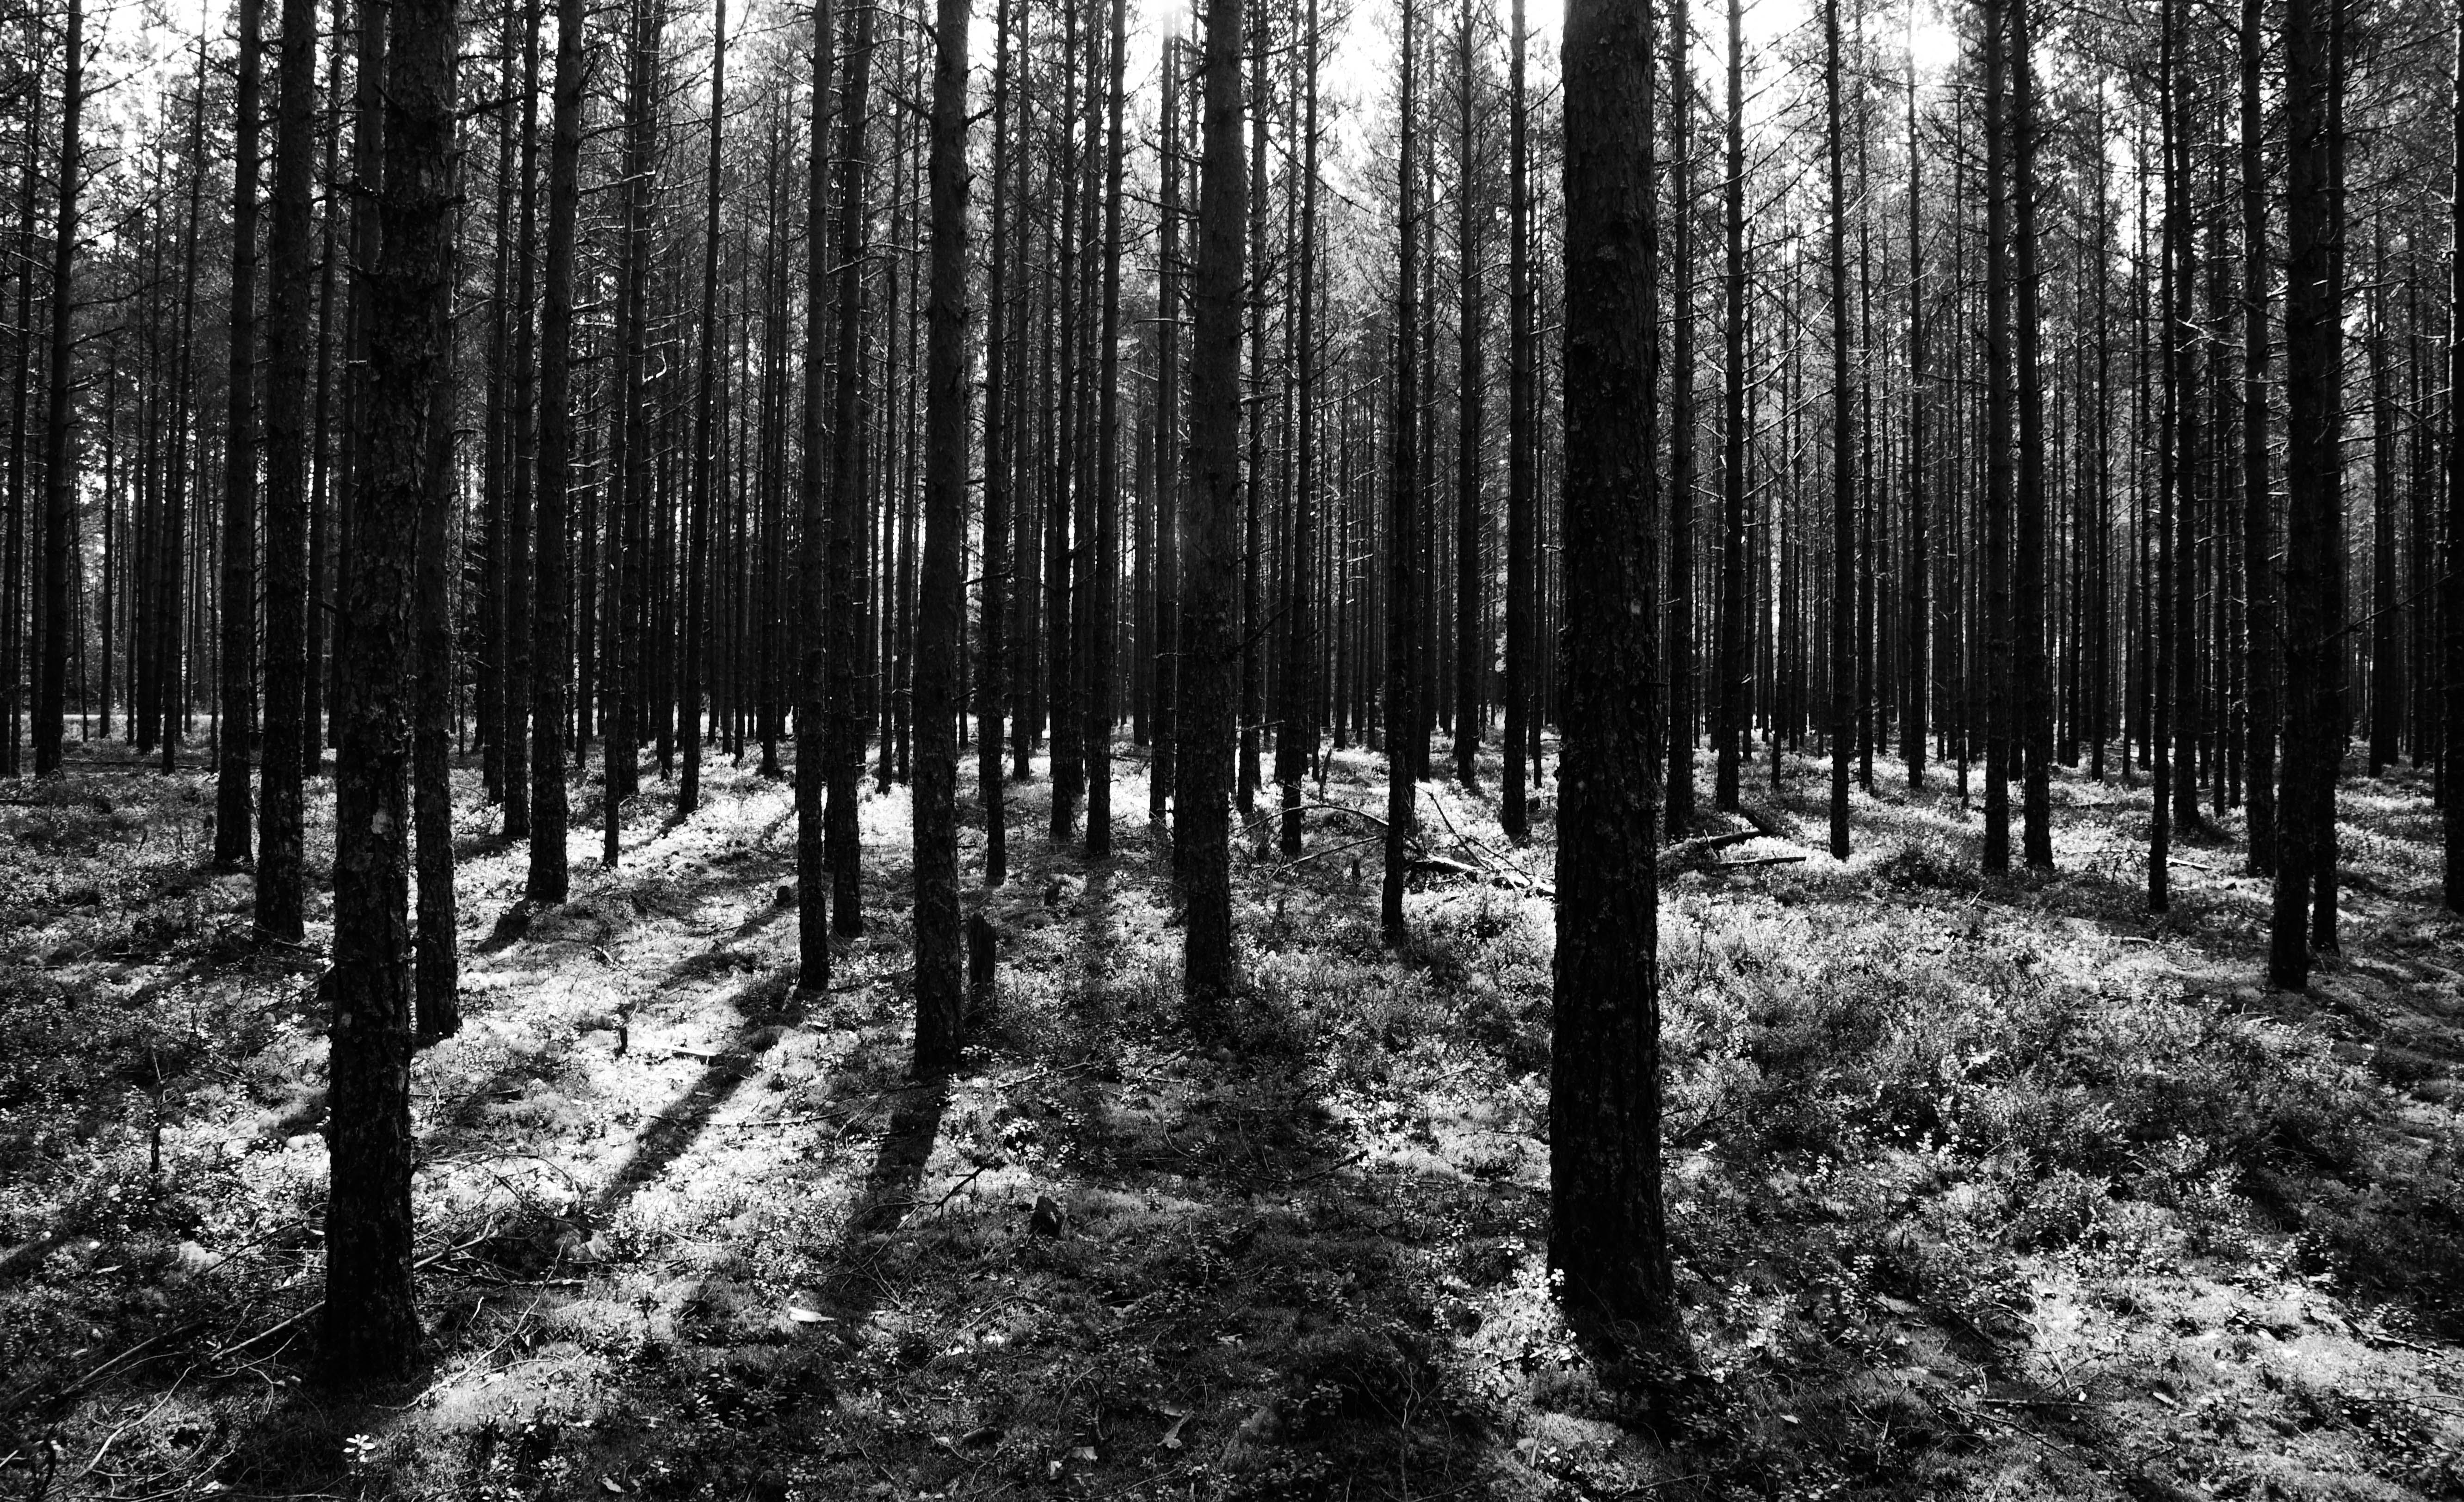 Grayscale Photography Of Forest